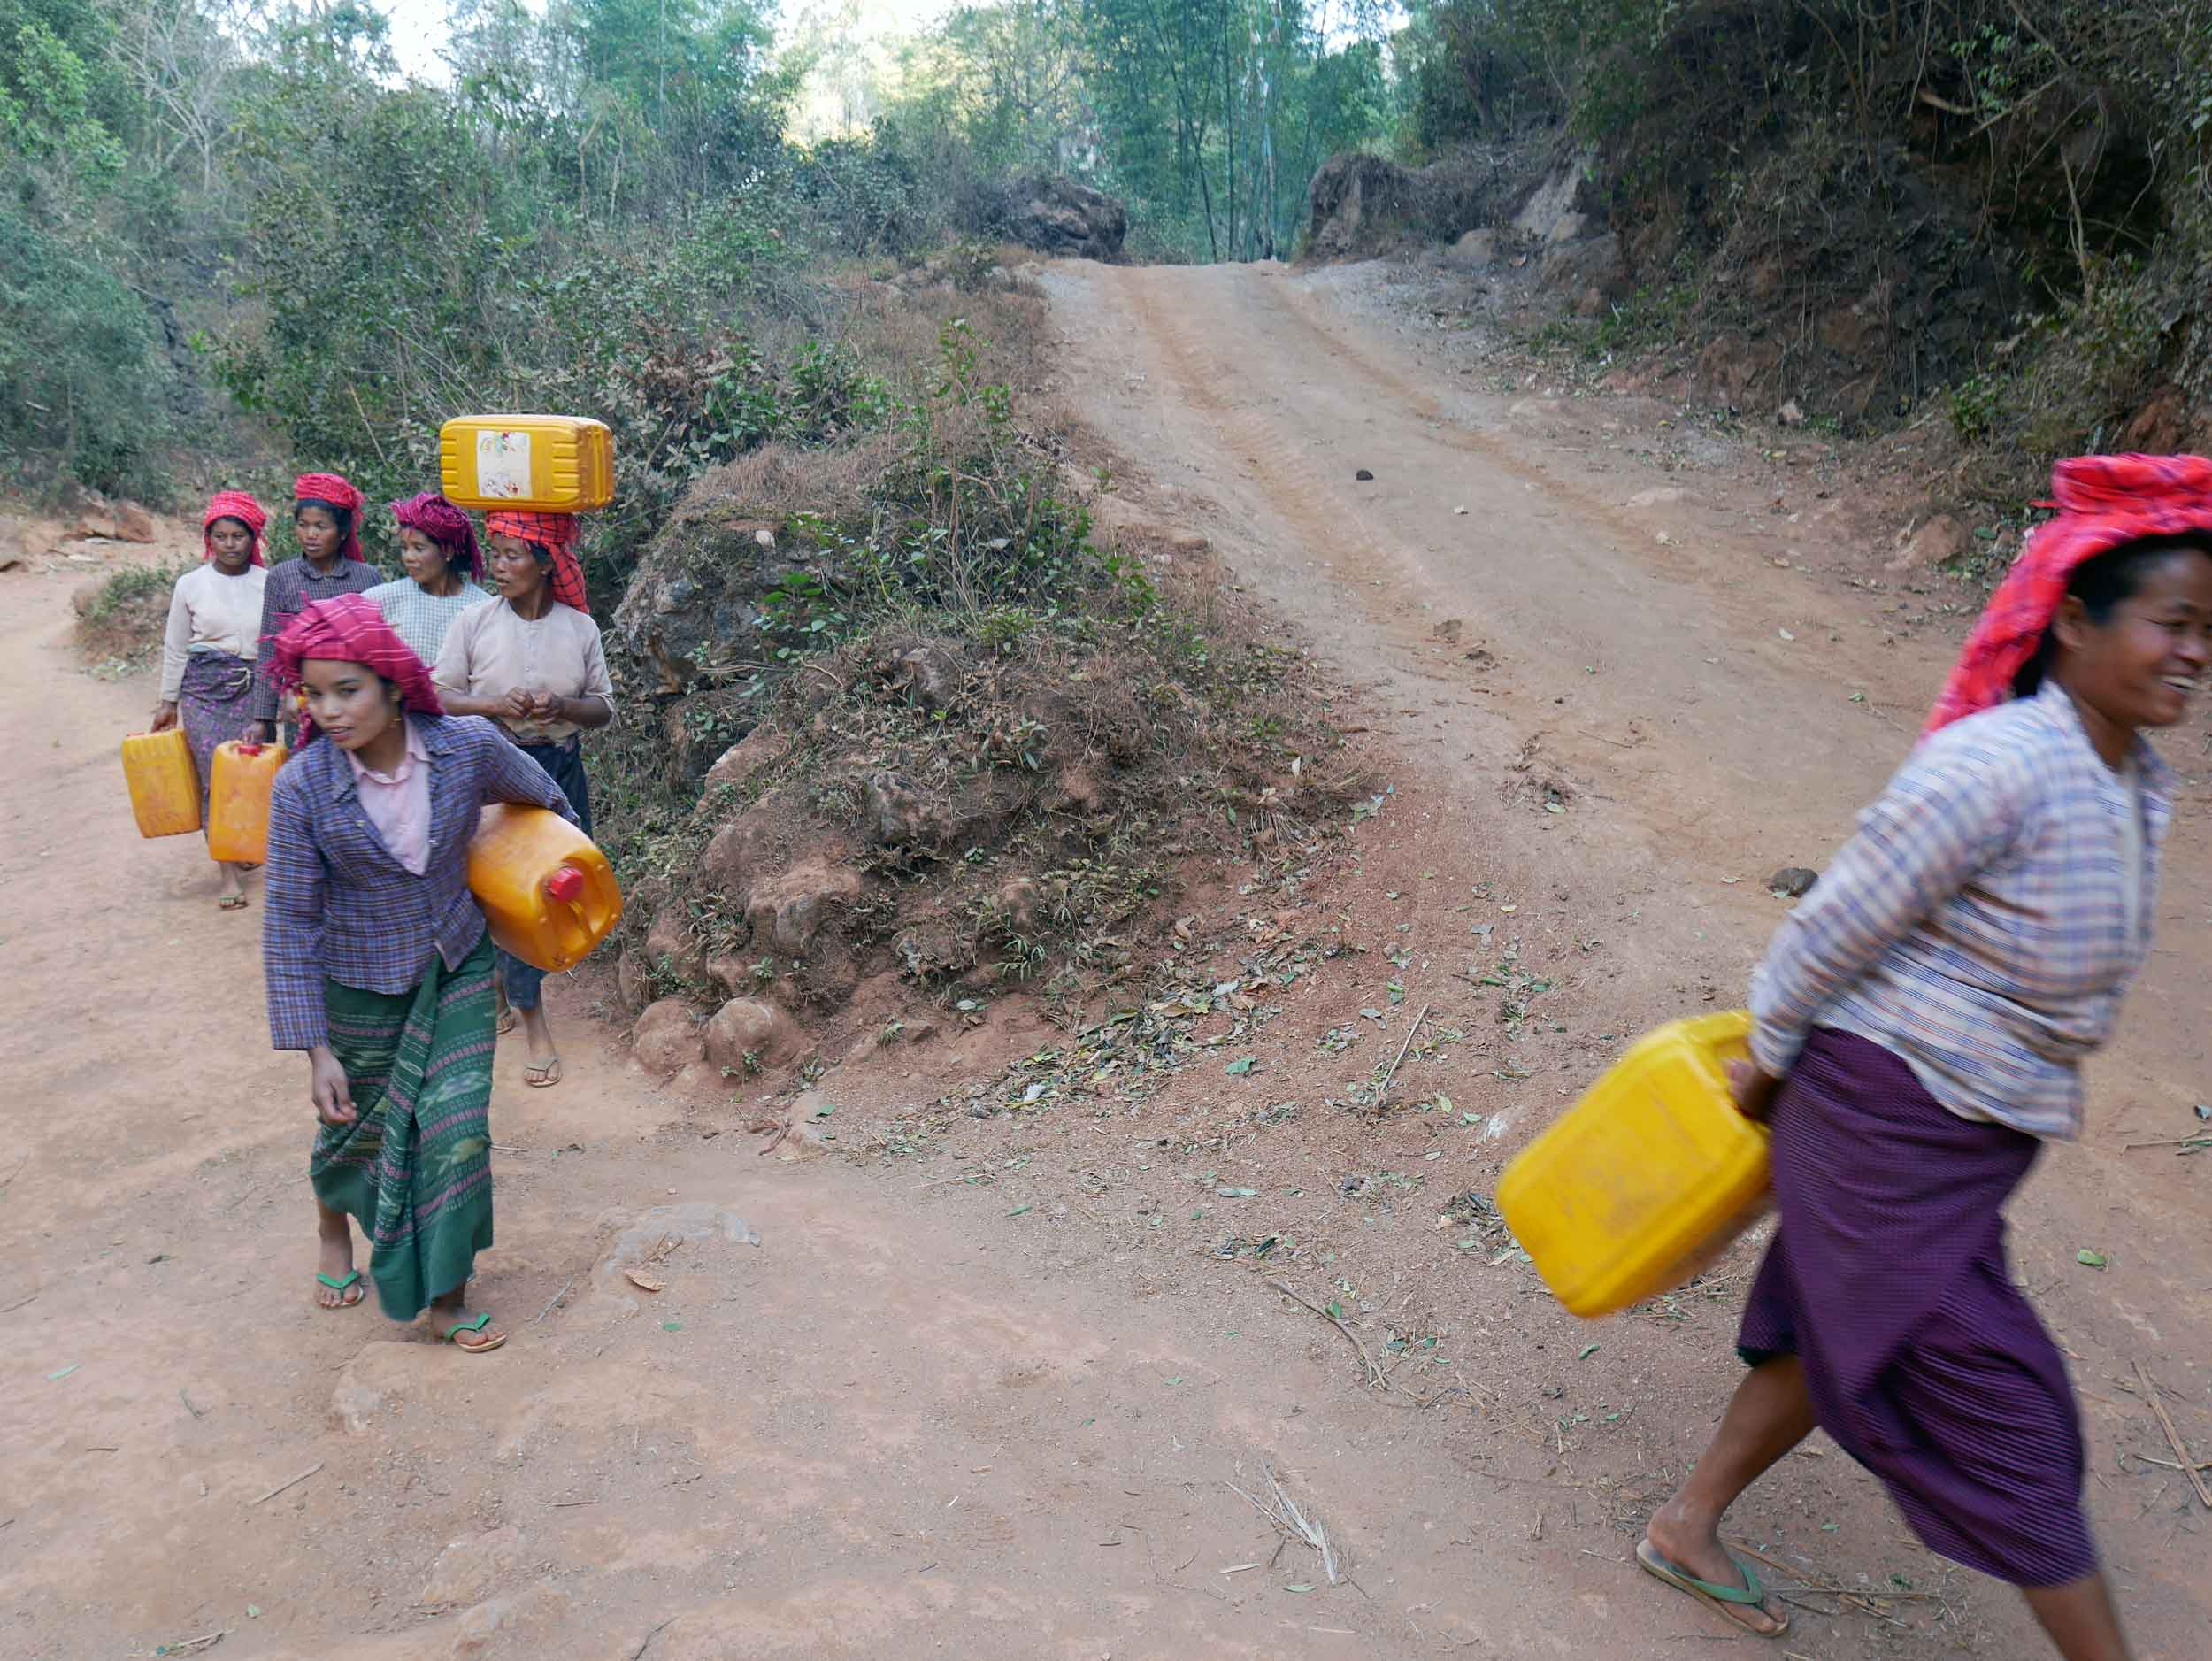 As we neared Pattu Pauk village, where we would spend the night, we passed local women walking to the well to collect water (Feb 20).